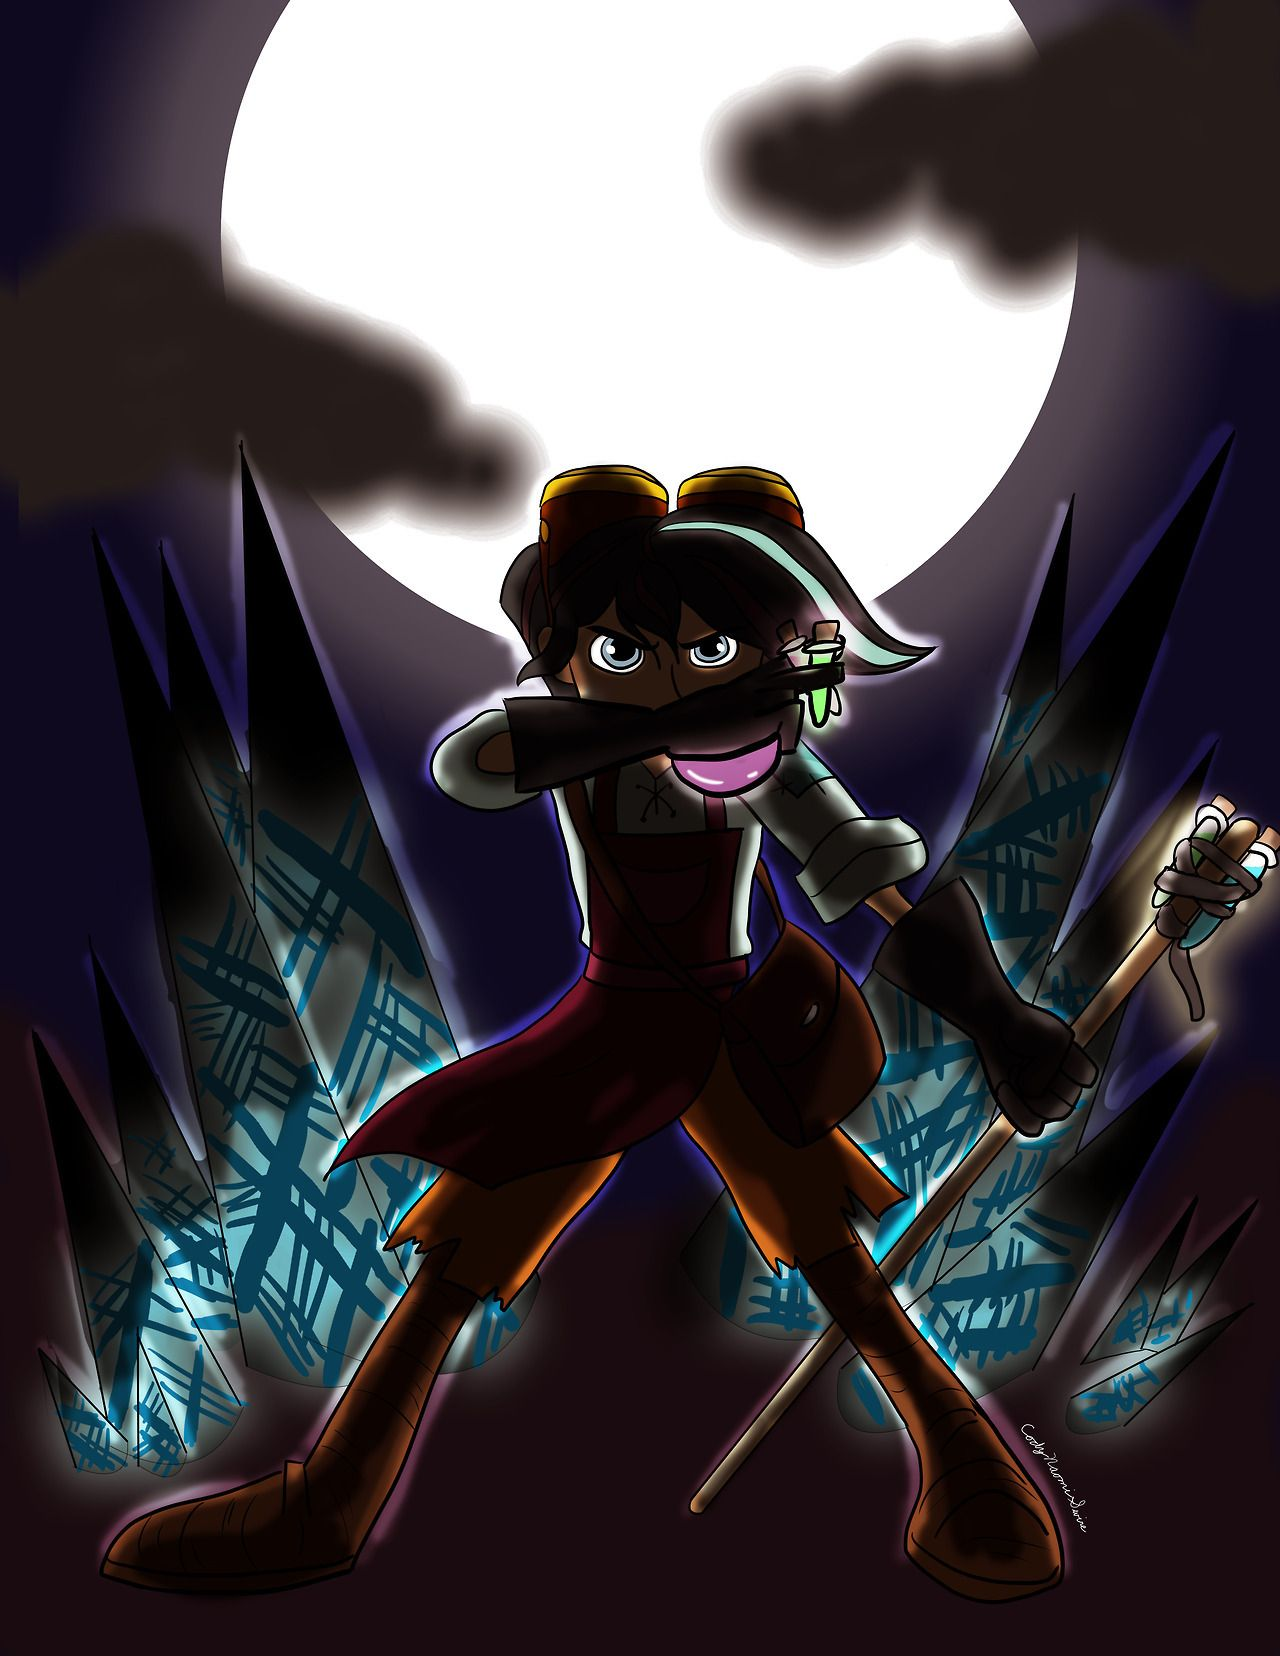 By The Light Of The Moon Got Inspired By Varian S Attempts At Combat In The Alchemist Returns And This Picture B Frozen And Tangled Favorite Character Fan Art